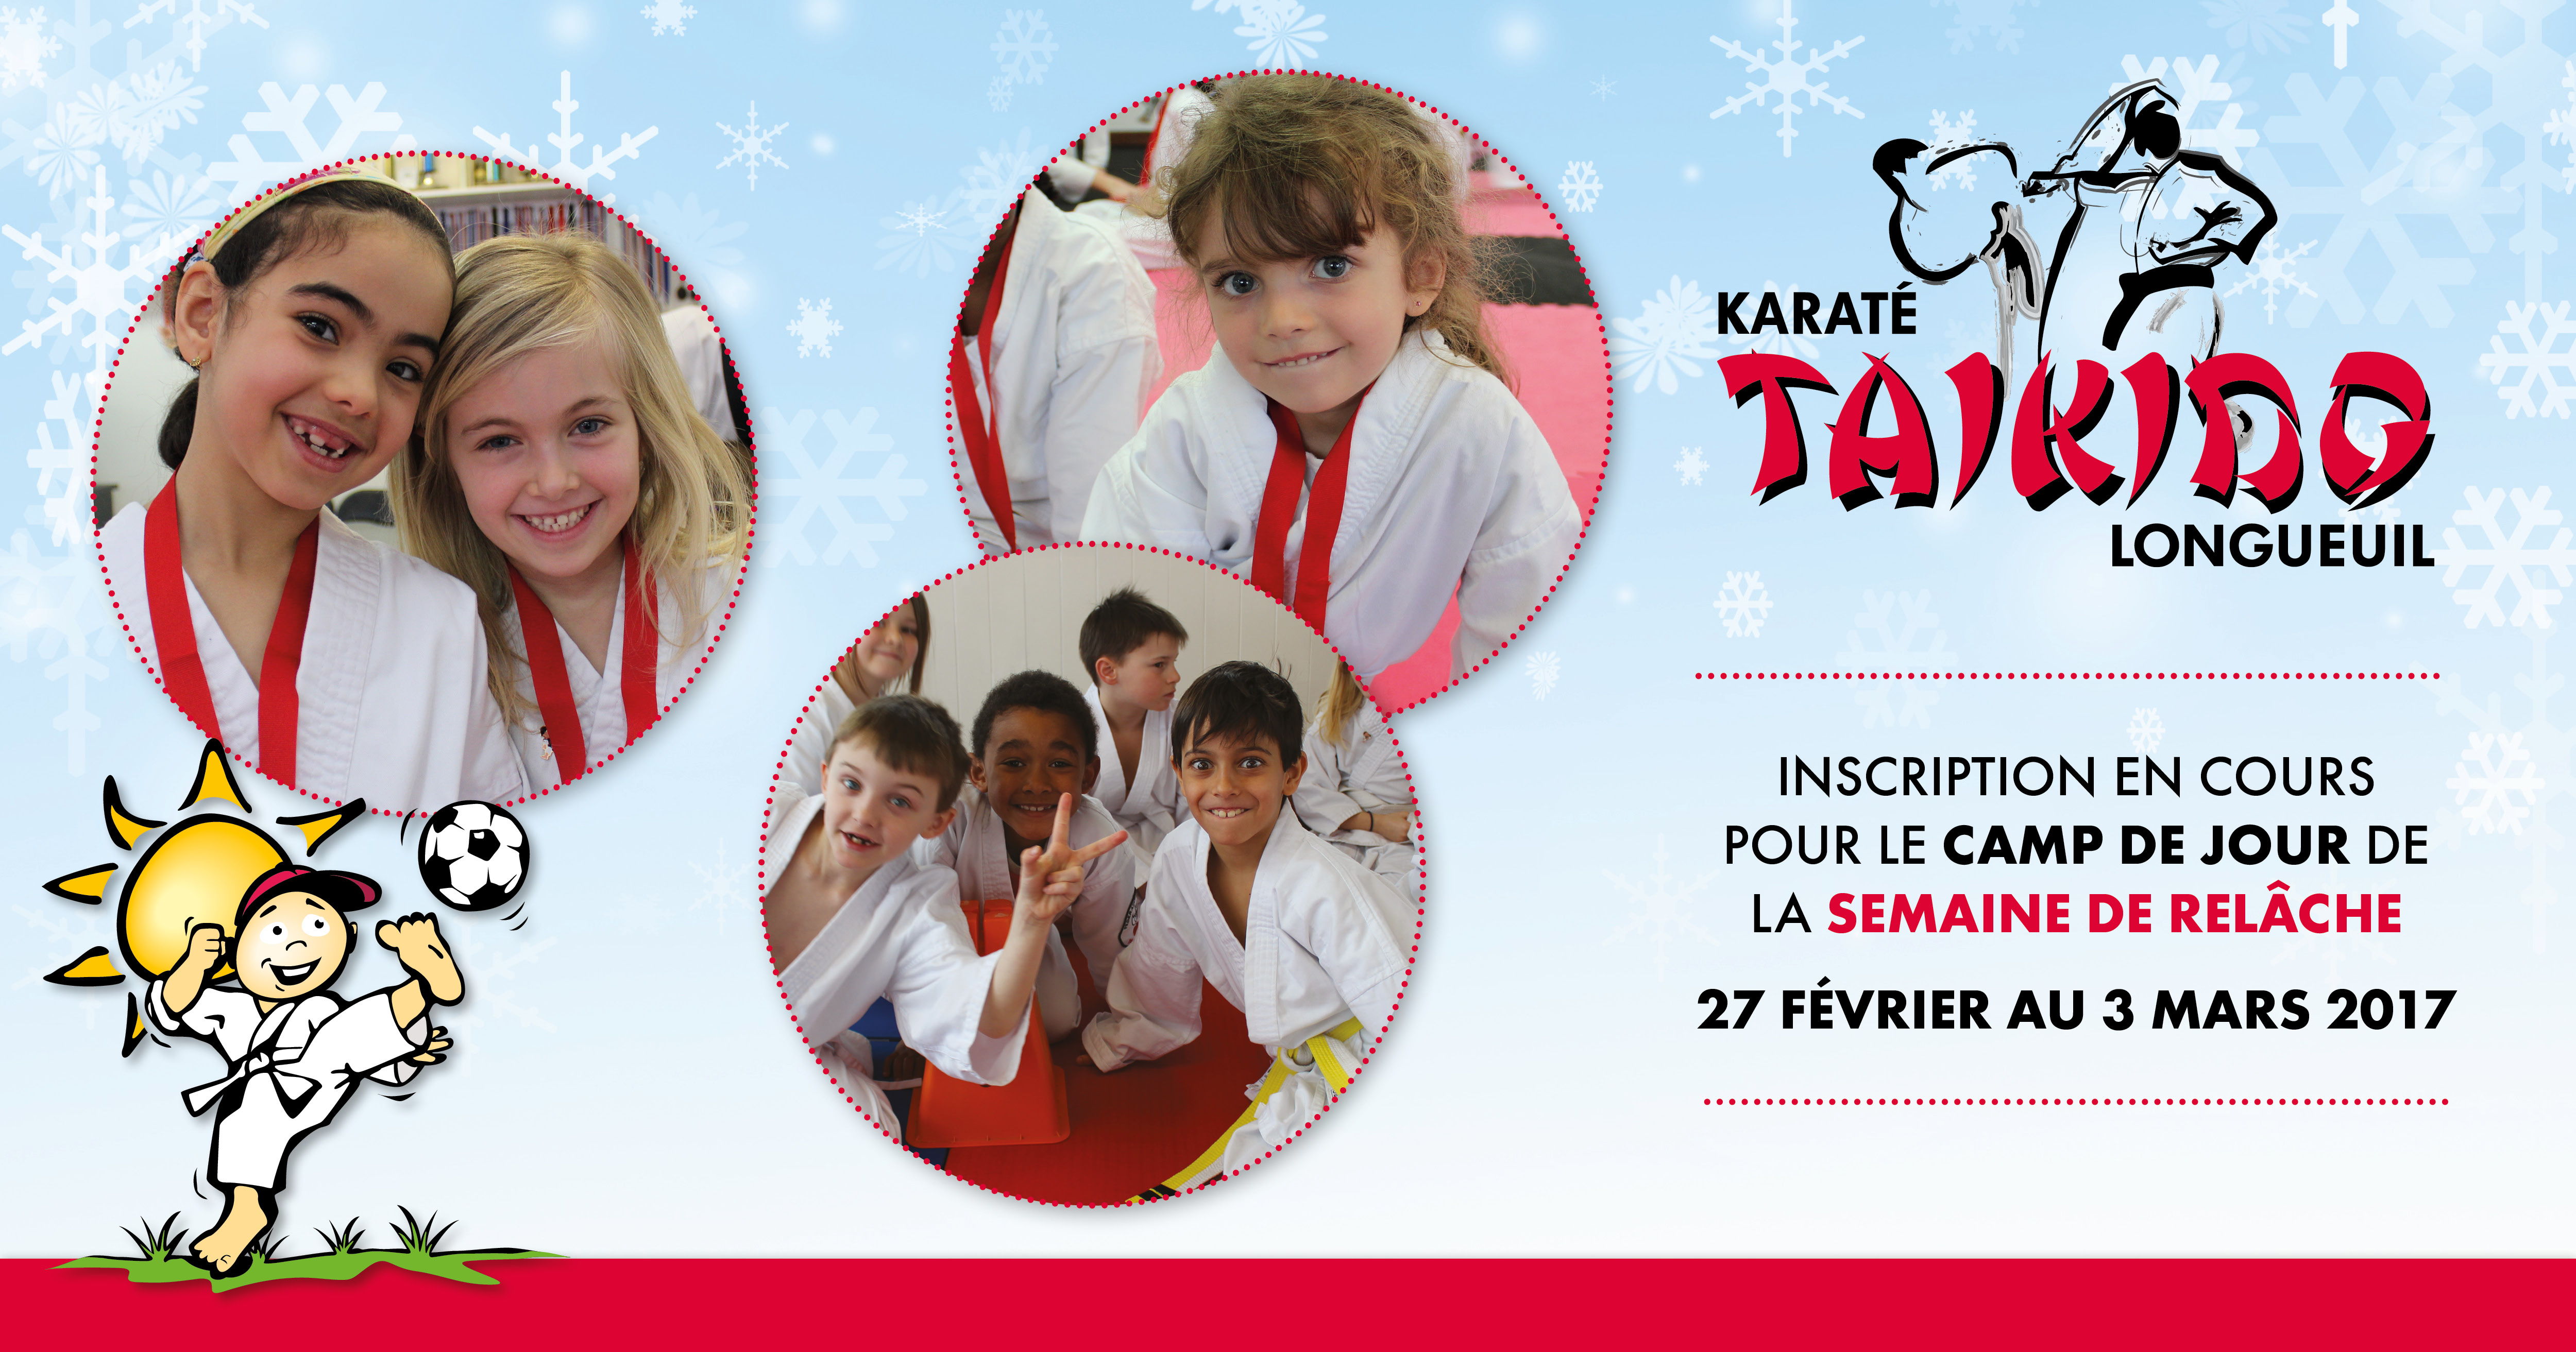 Camp jour relache karate Taikido Longueuil